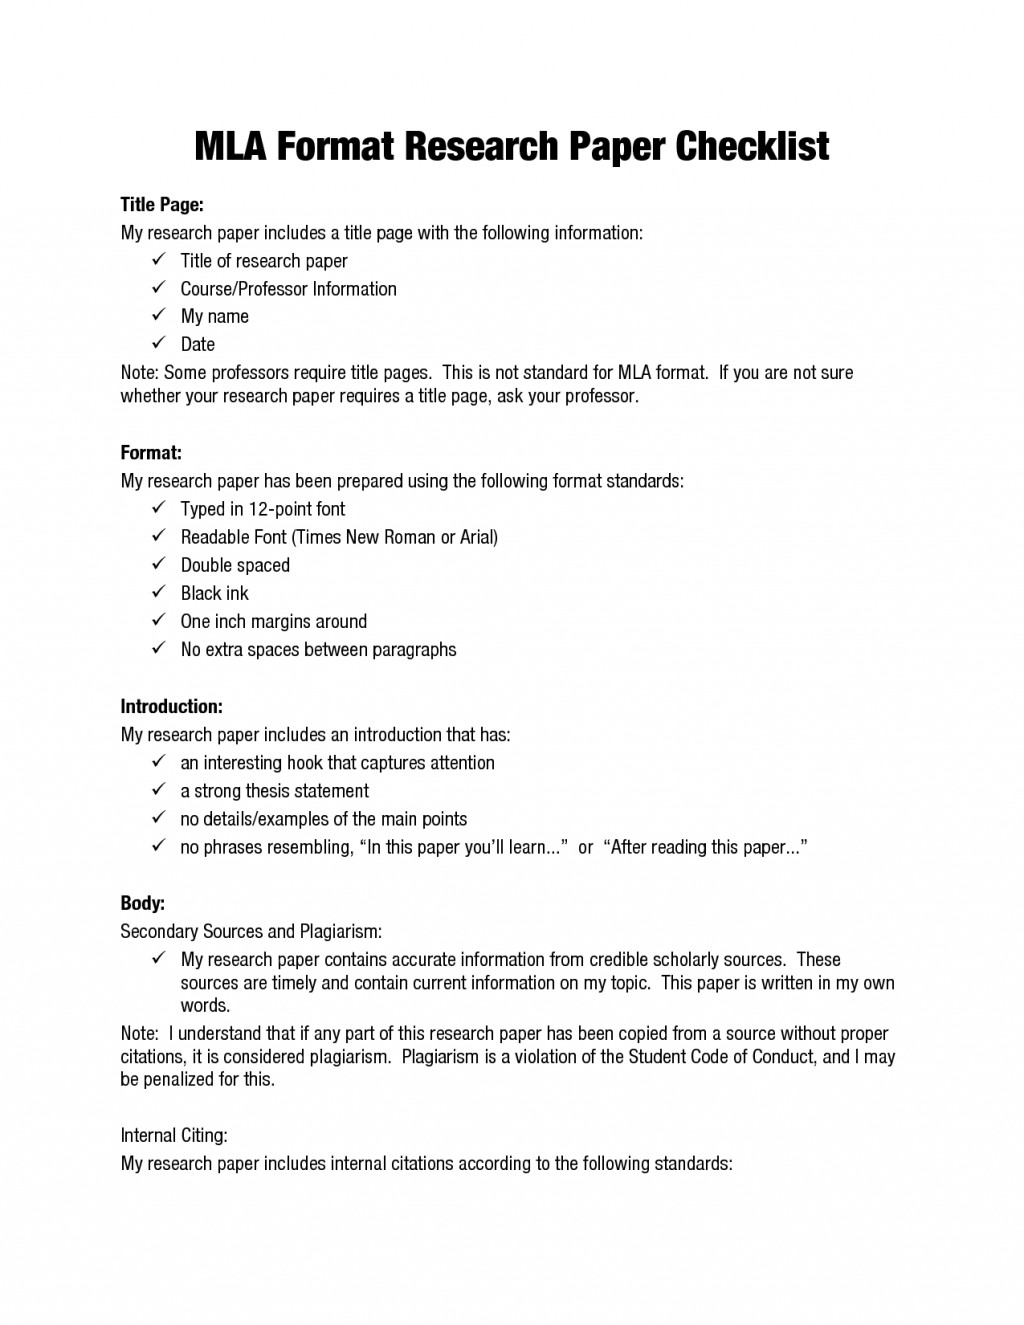 006 Credible Sources For Researchs Awful Research Papers High School Paper List Of Large